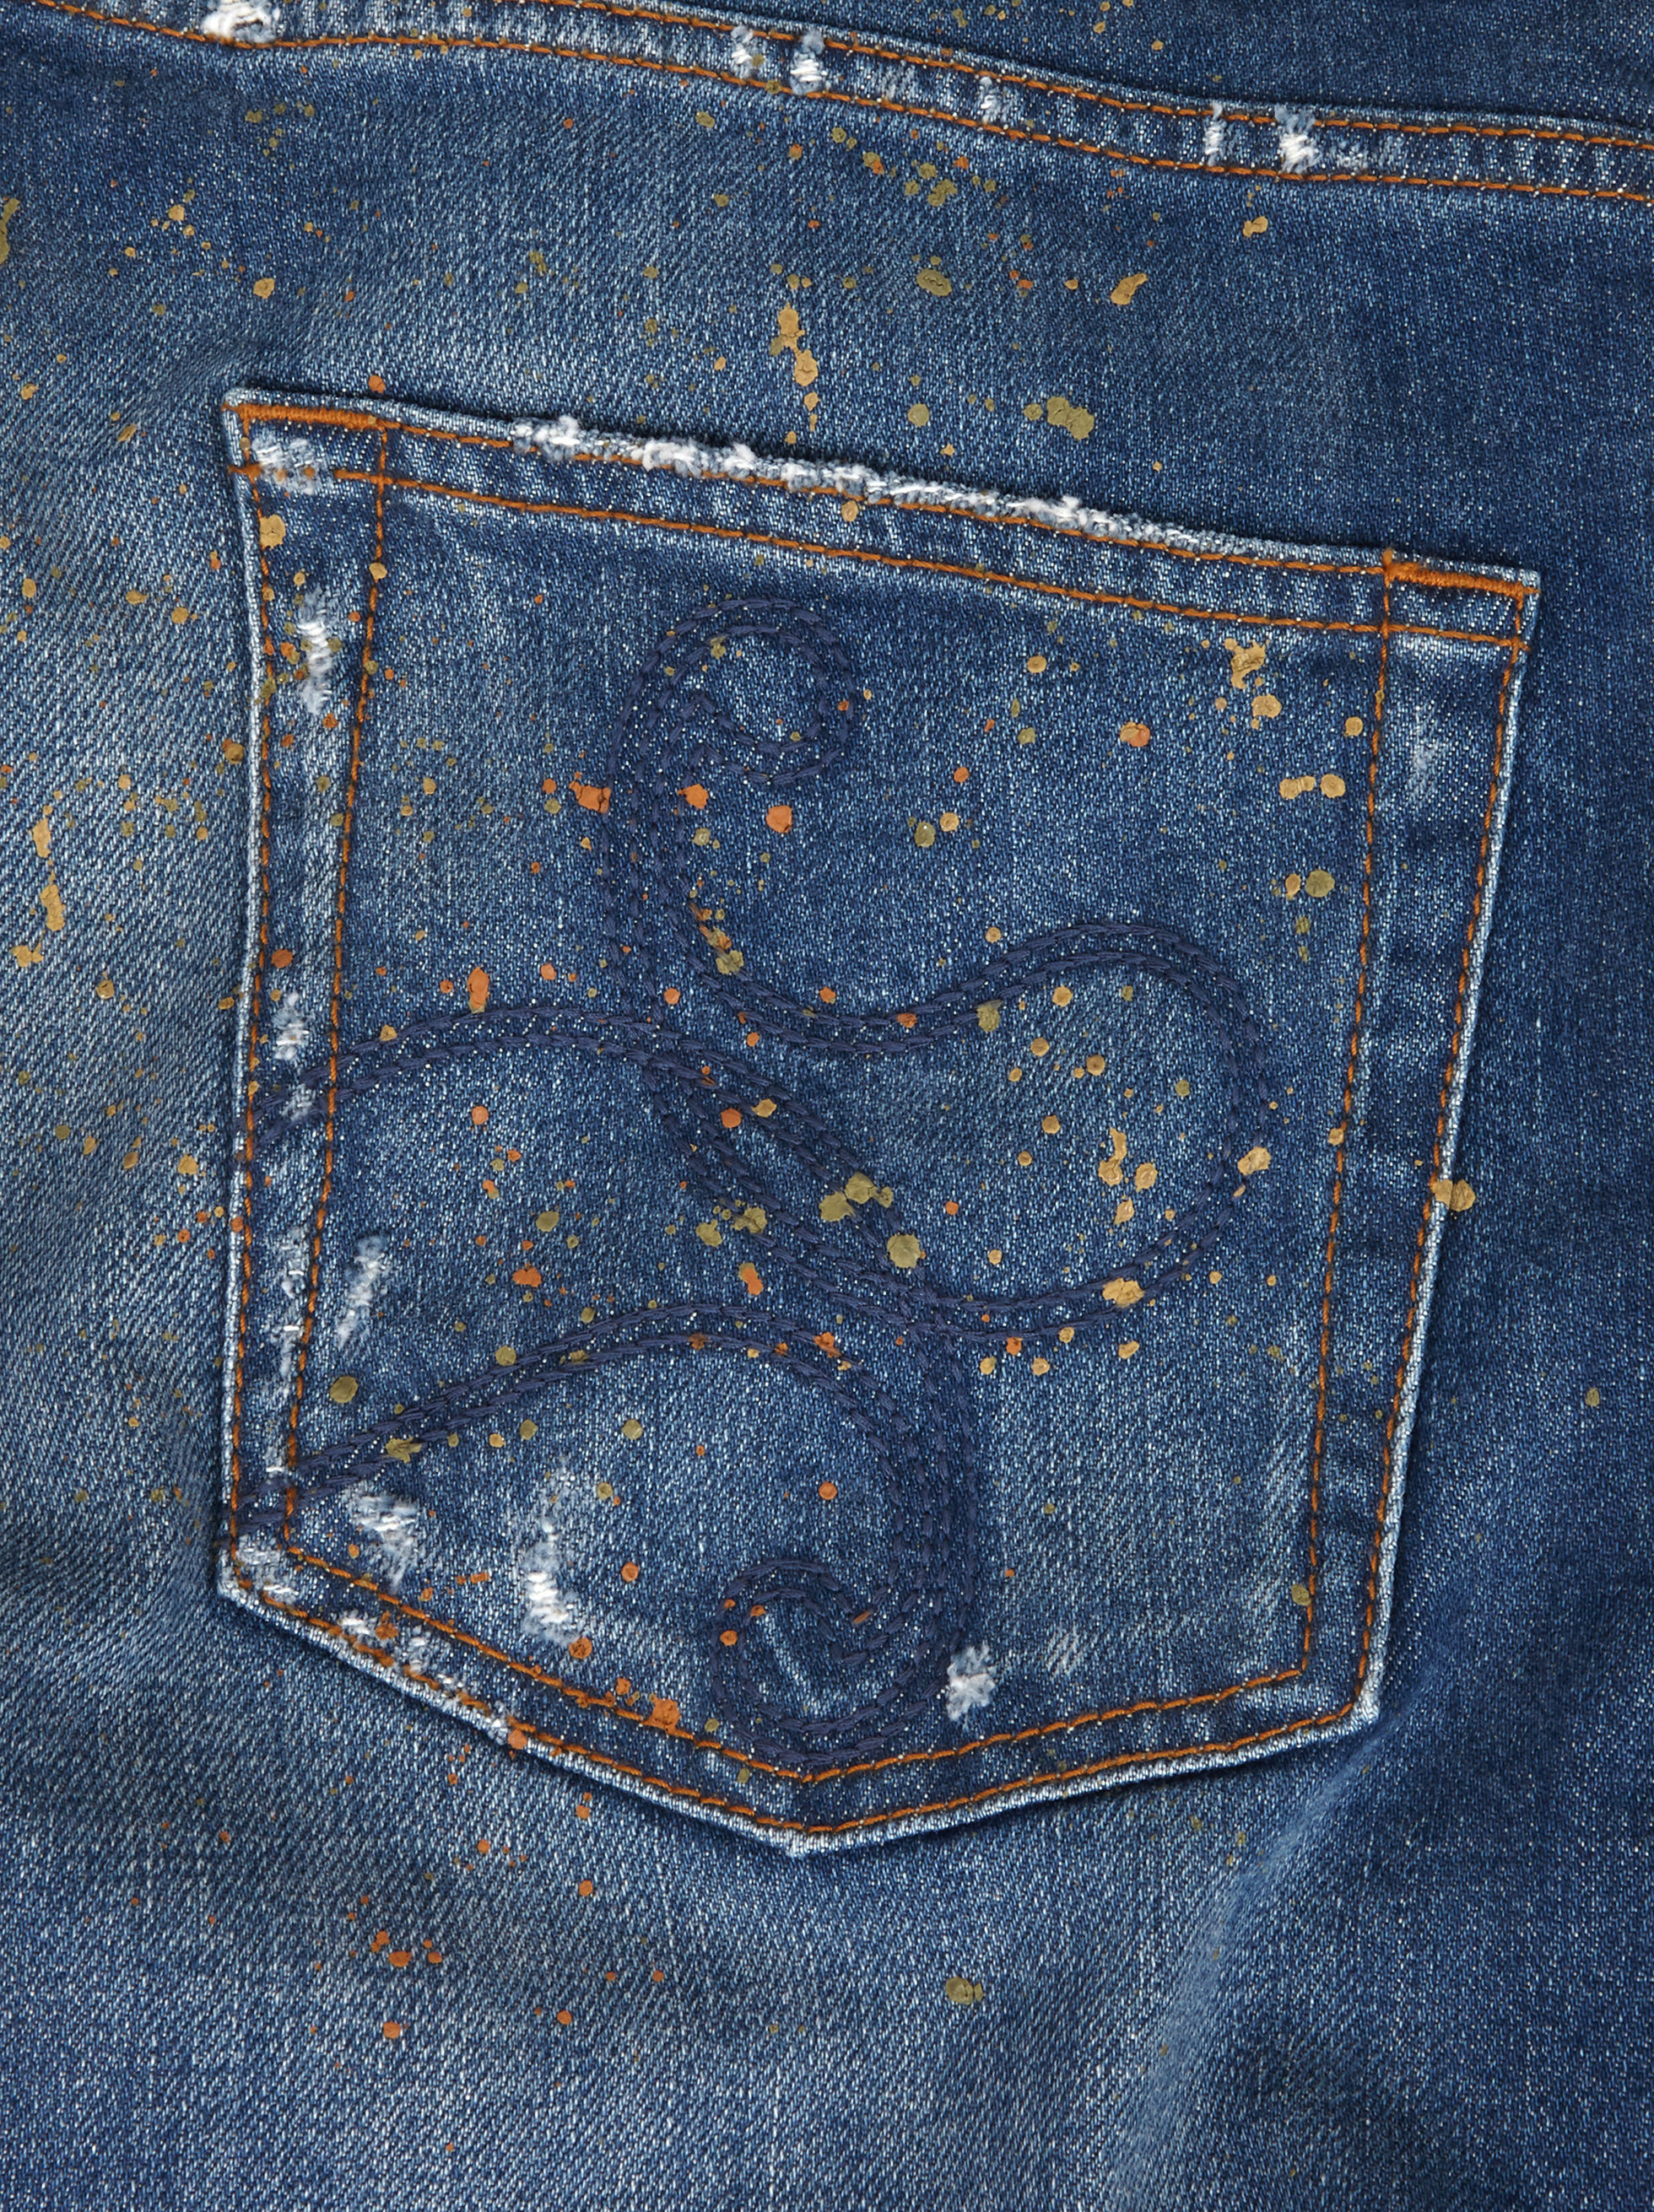 JEANS WITH PAINT SPLASHES